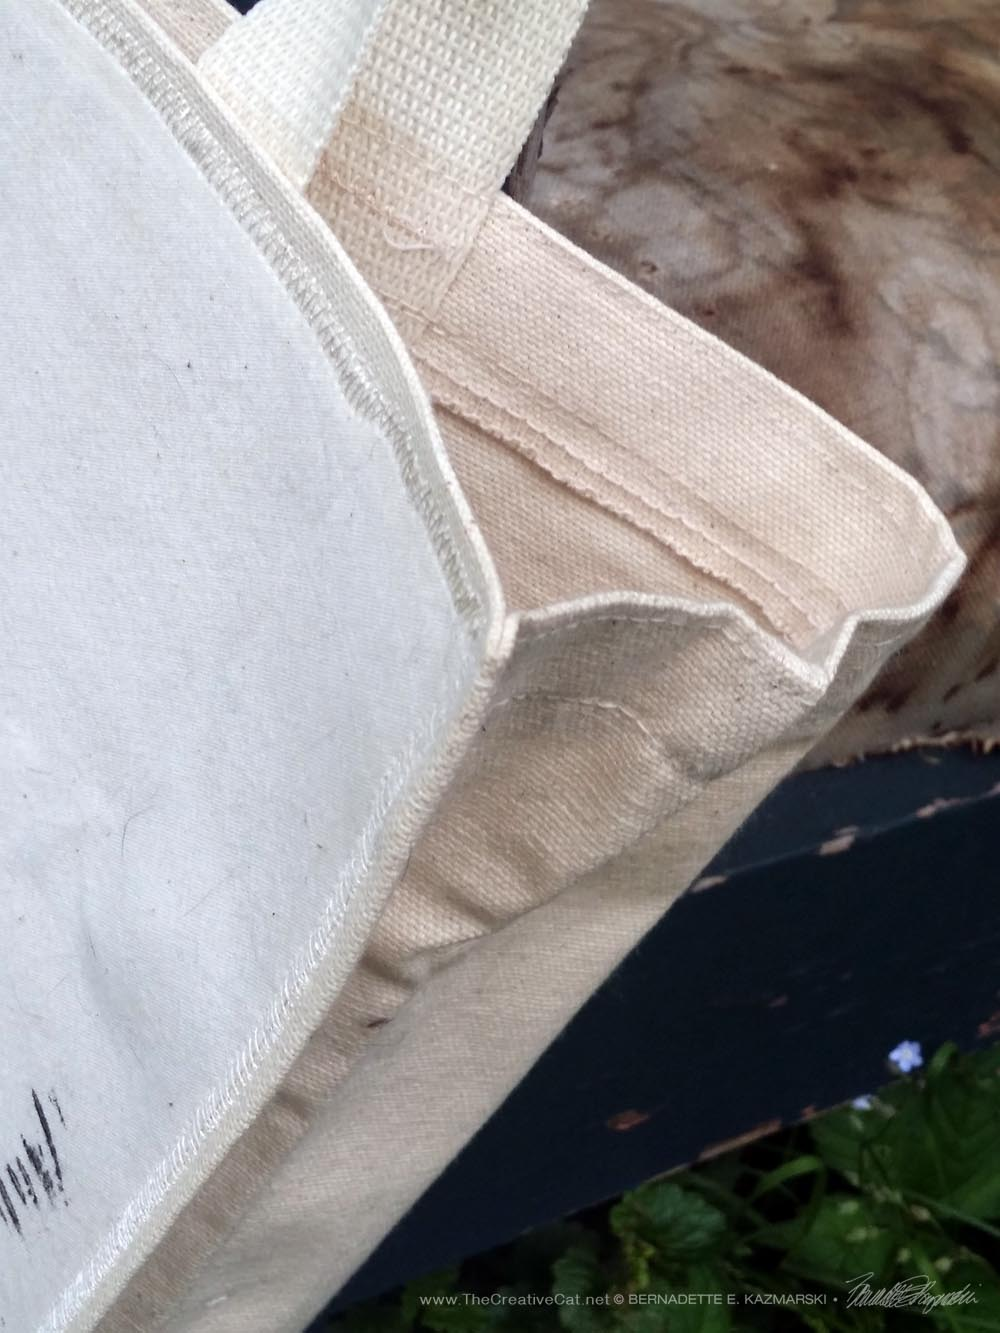 Edge-stitching on the tote bags.